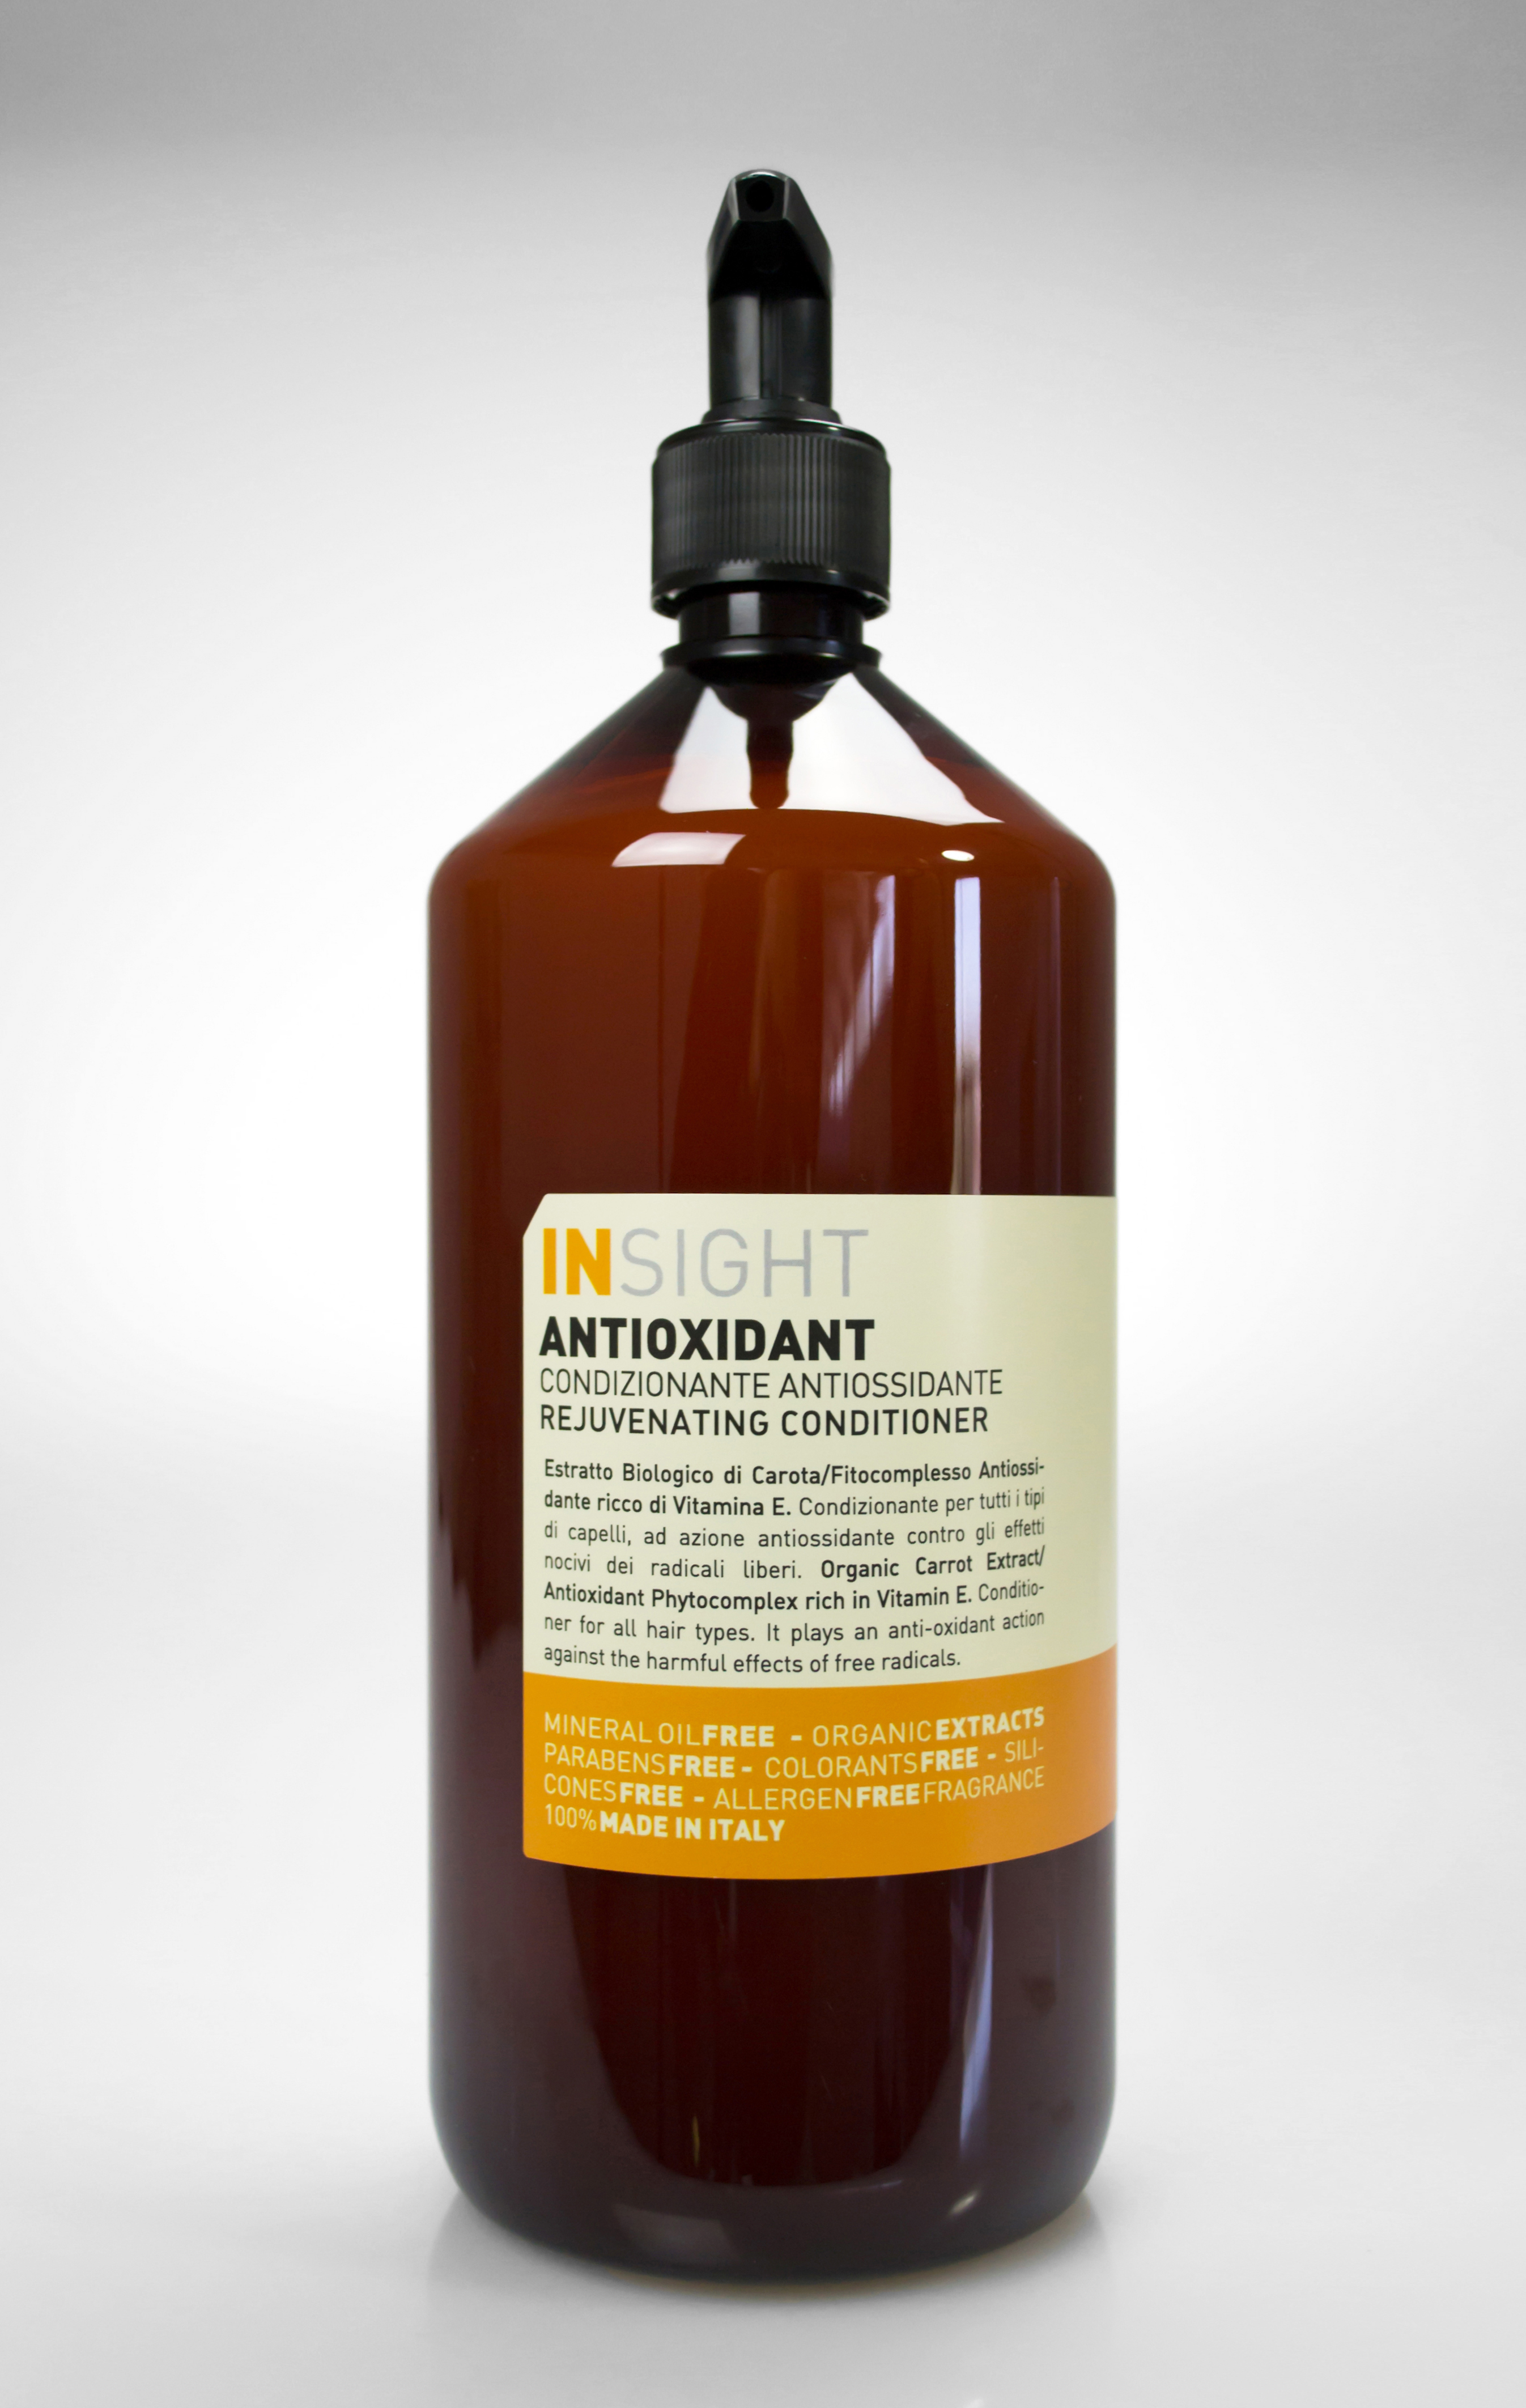 ANTIOXIDANT REJUVENATING CONDITIONER